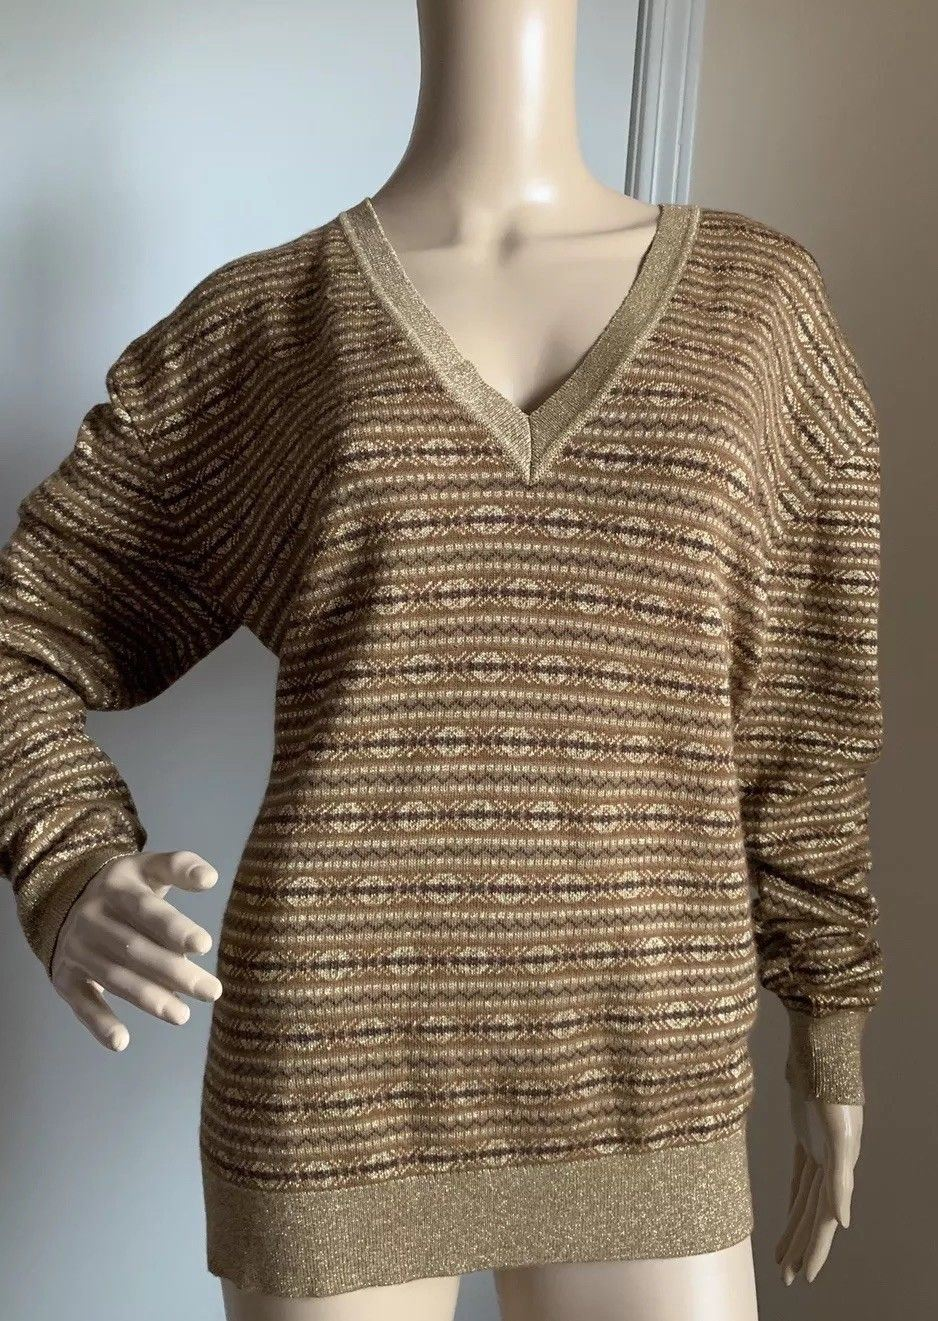 New $1450 Ralph Lauren Purple Label Women's V Neck Sweater LT Tobacco L Italy